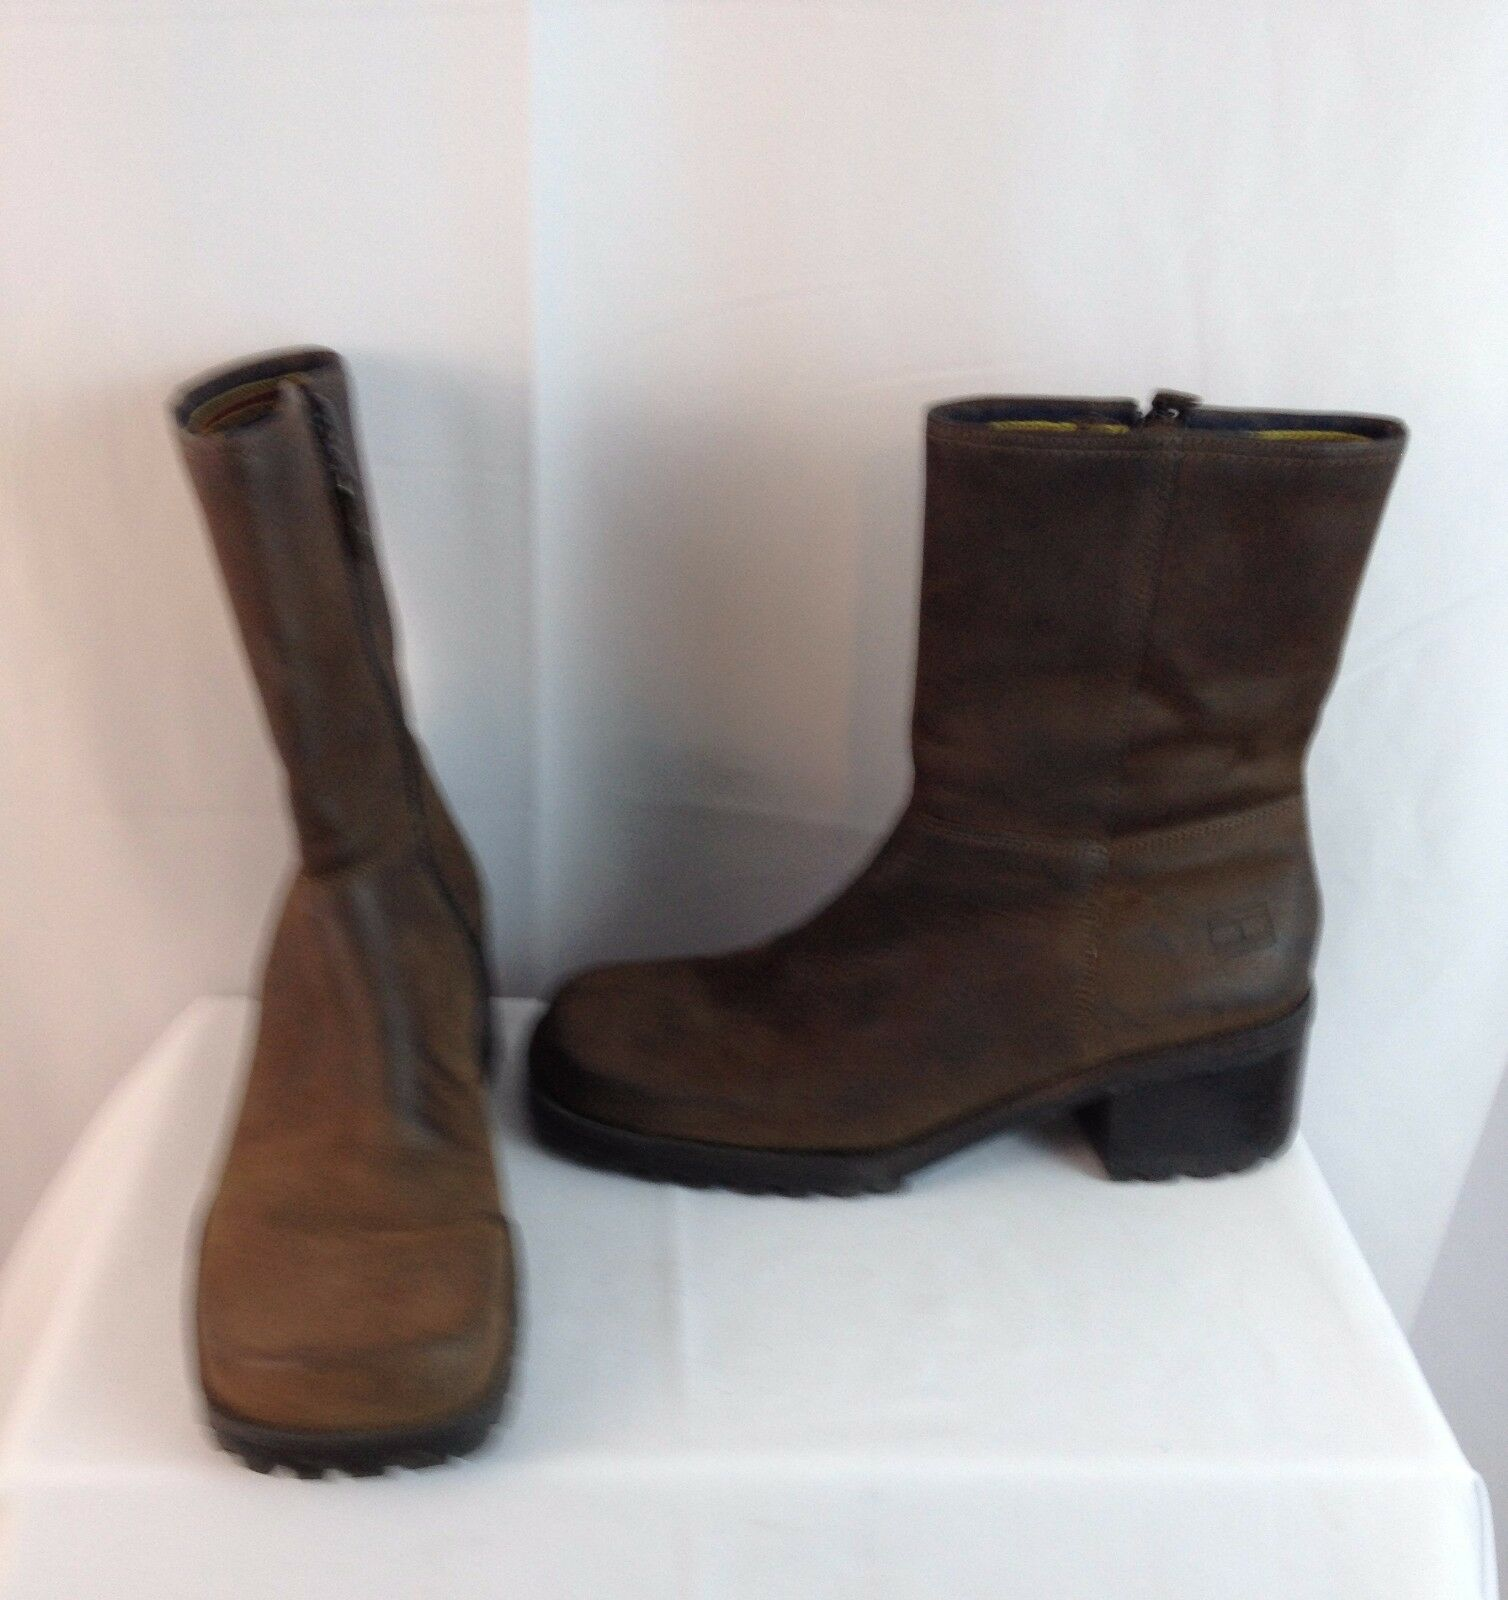 Tommy Hilfiger Boots Size 7 M Brown Leather Mid-Calf Side Zip Made in Brazil